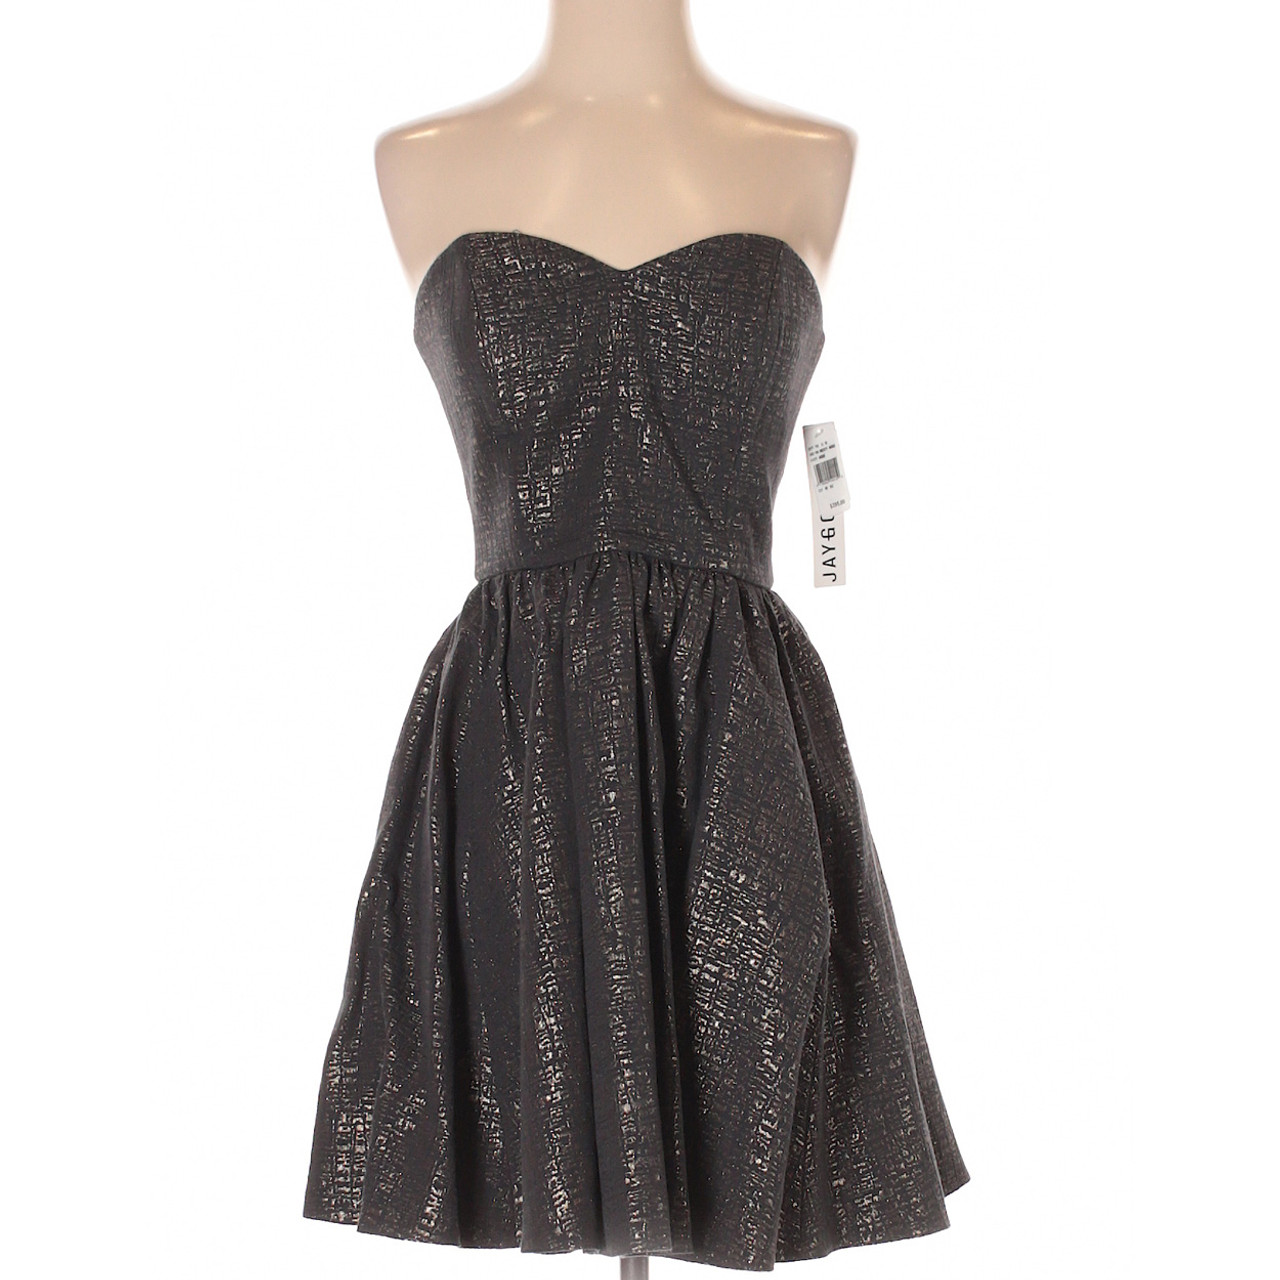 608f2e55eb1 Jay Godfrey Strapless Cocktail Party Dress with Glitter